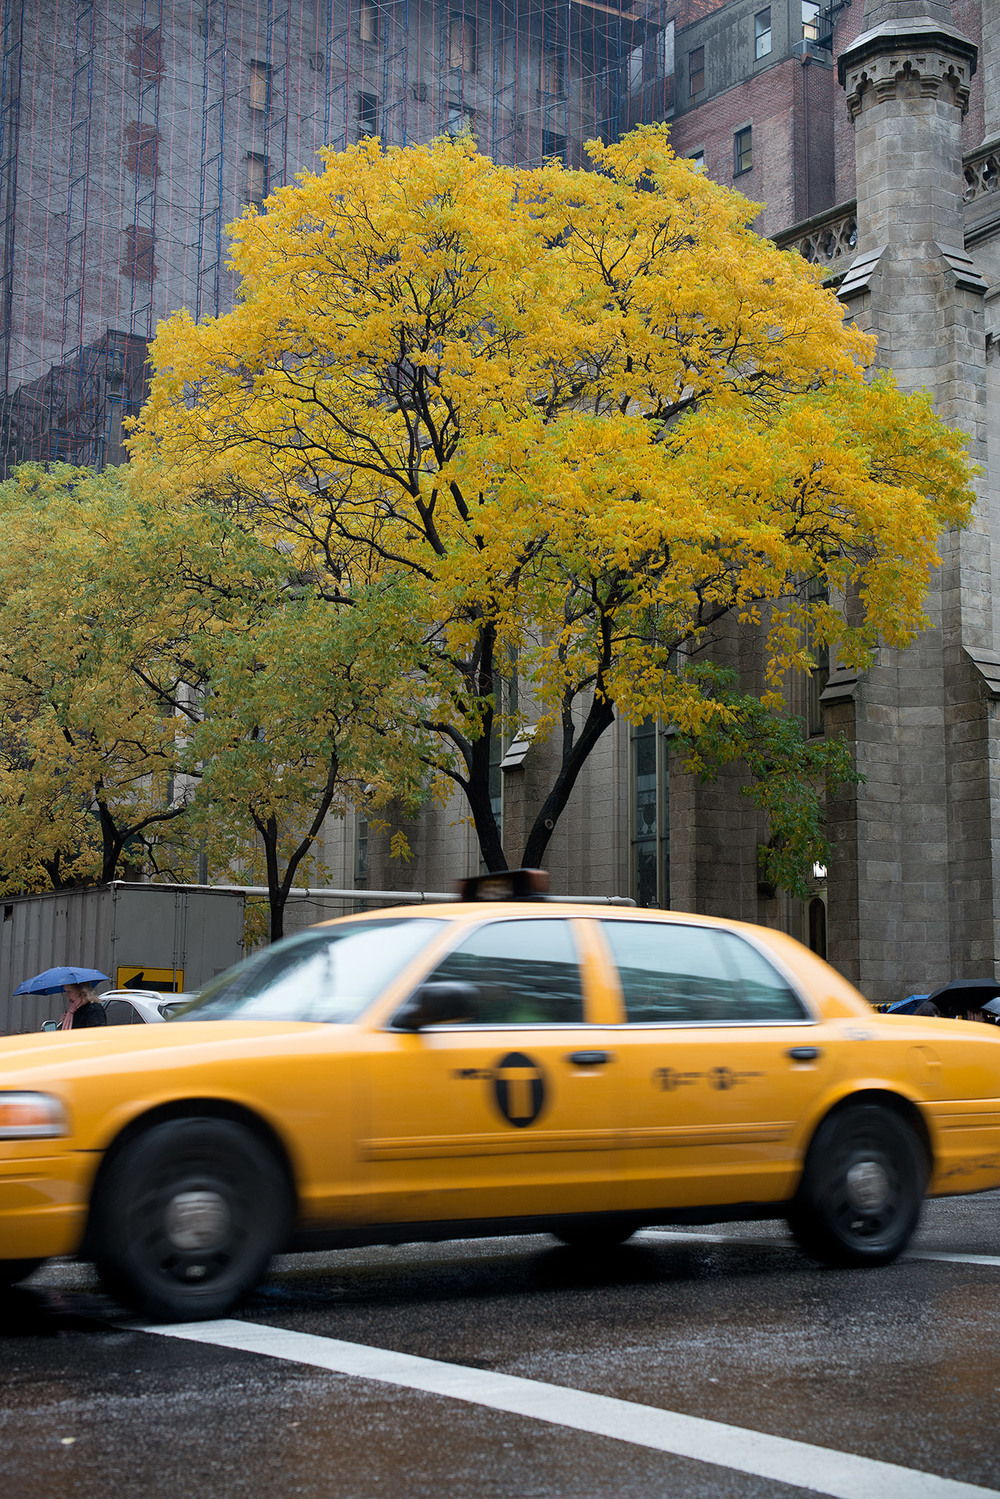 yellow-taxi-new-york-and-tree-jens-lennartsson.jpg